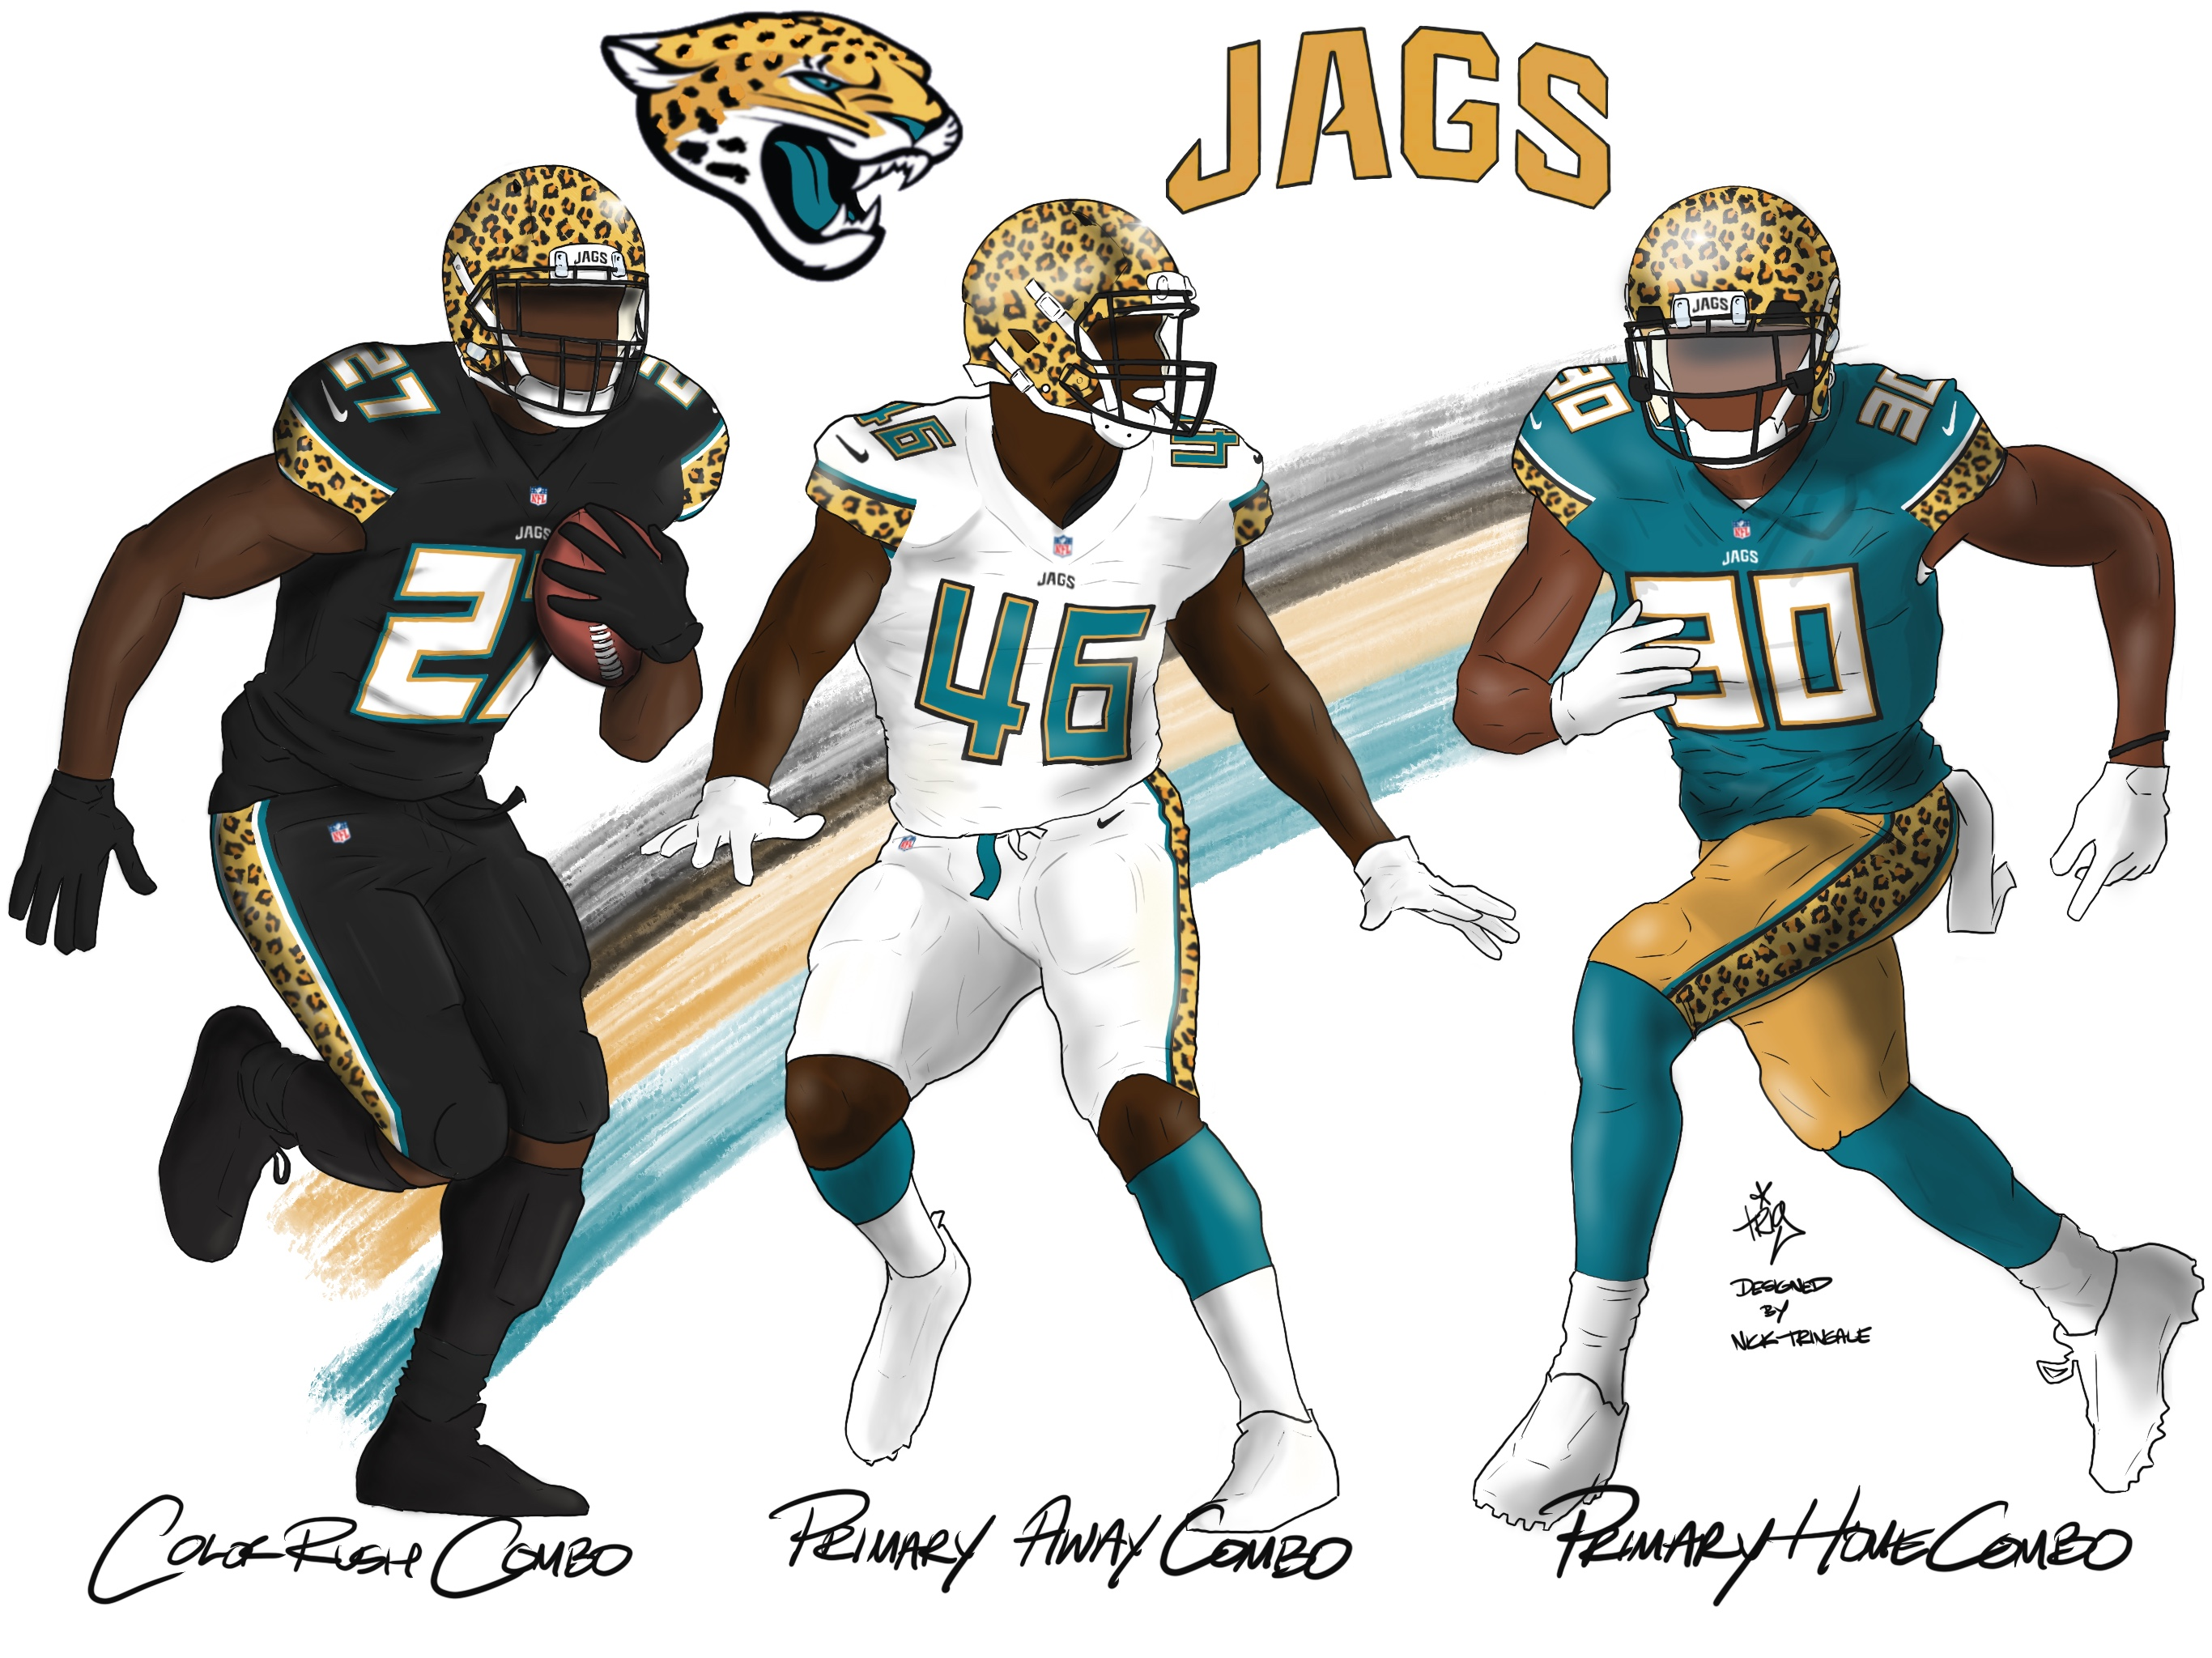 Jacksonville Jaguars New Uniforms 2020.The Jacksonville Jaguars Almost Hit The Mark With Its New